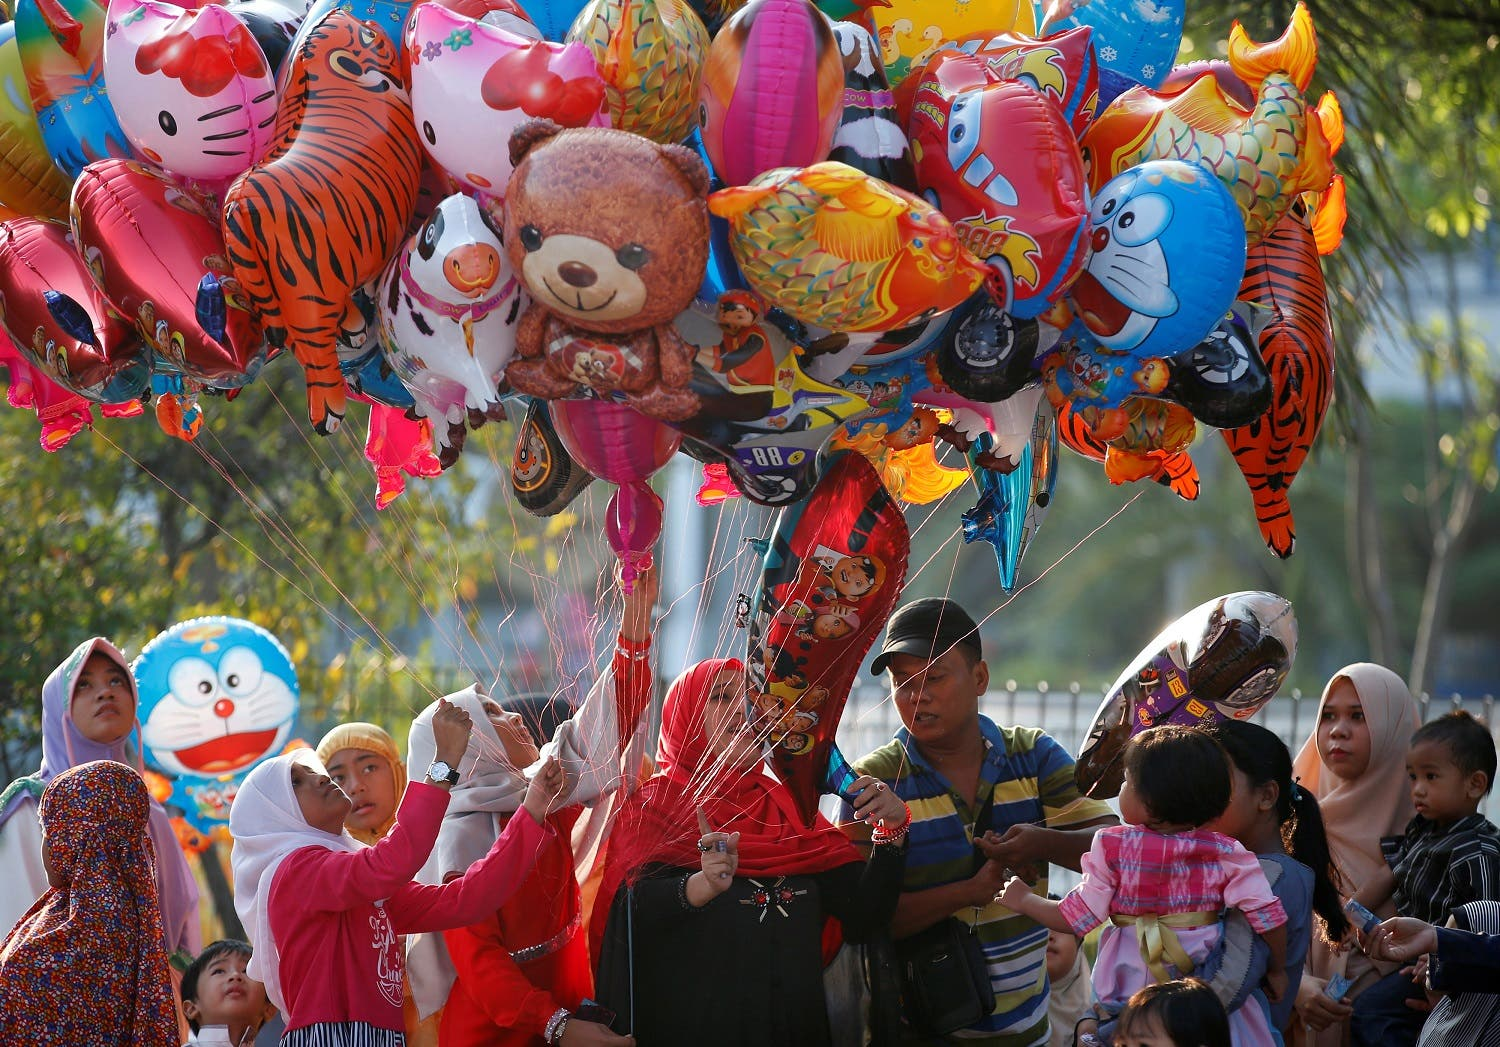 Muslims children buy balloons after attending Eid al-Fitr prayers to mark the end of the holy fasting month of Ramadan at Sunda Kelapa port in Jakarta, Indonesia July 6, 2016. REUTERS